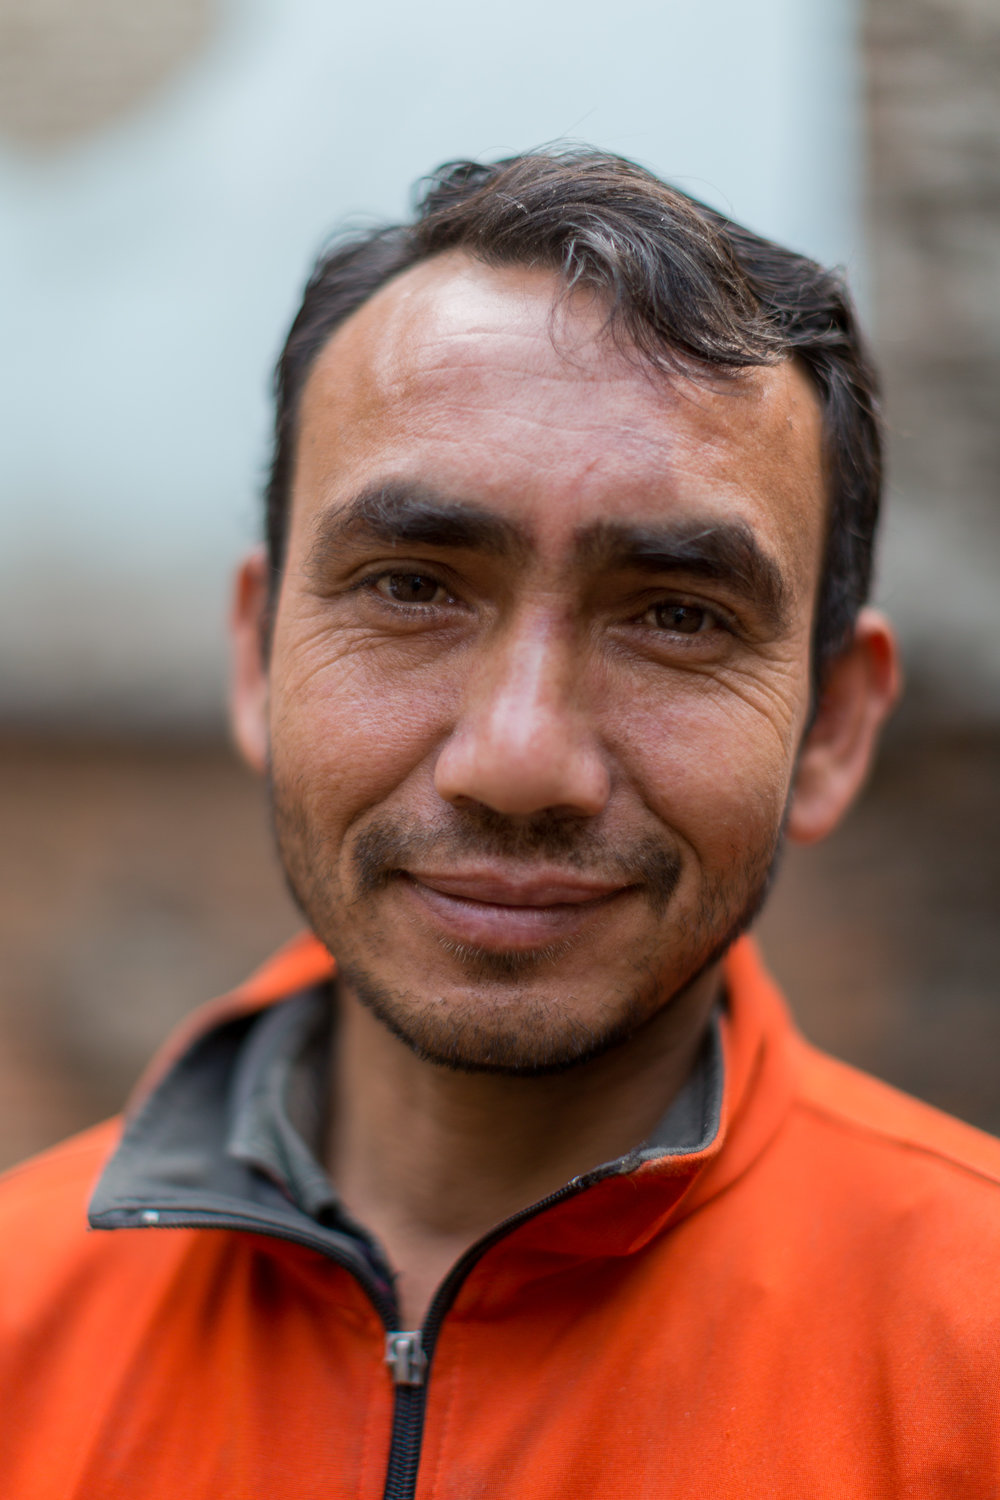 "Madhu Bahattri exerts a calmness in his approach to overcoming the unjust situation he and his family find themselves in ""we have been left with no choice, we need a home and cannot wait any longer. We have to start again."""